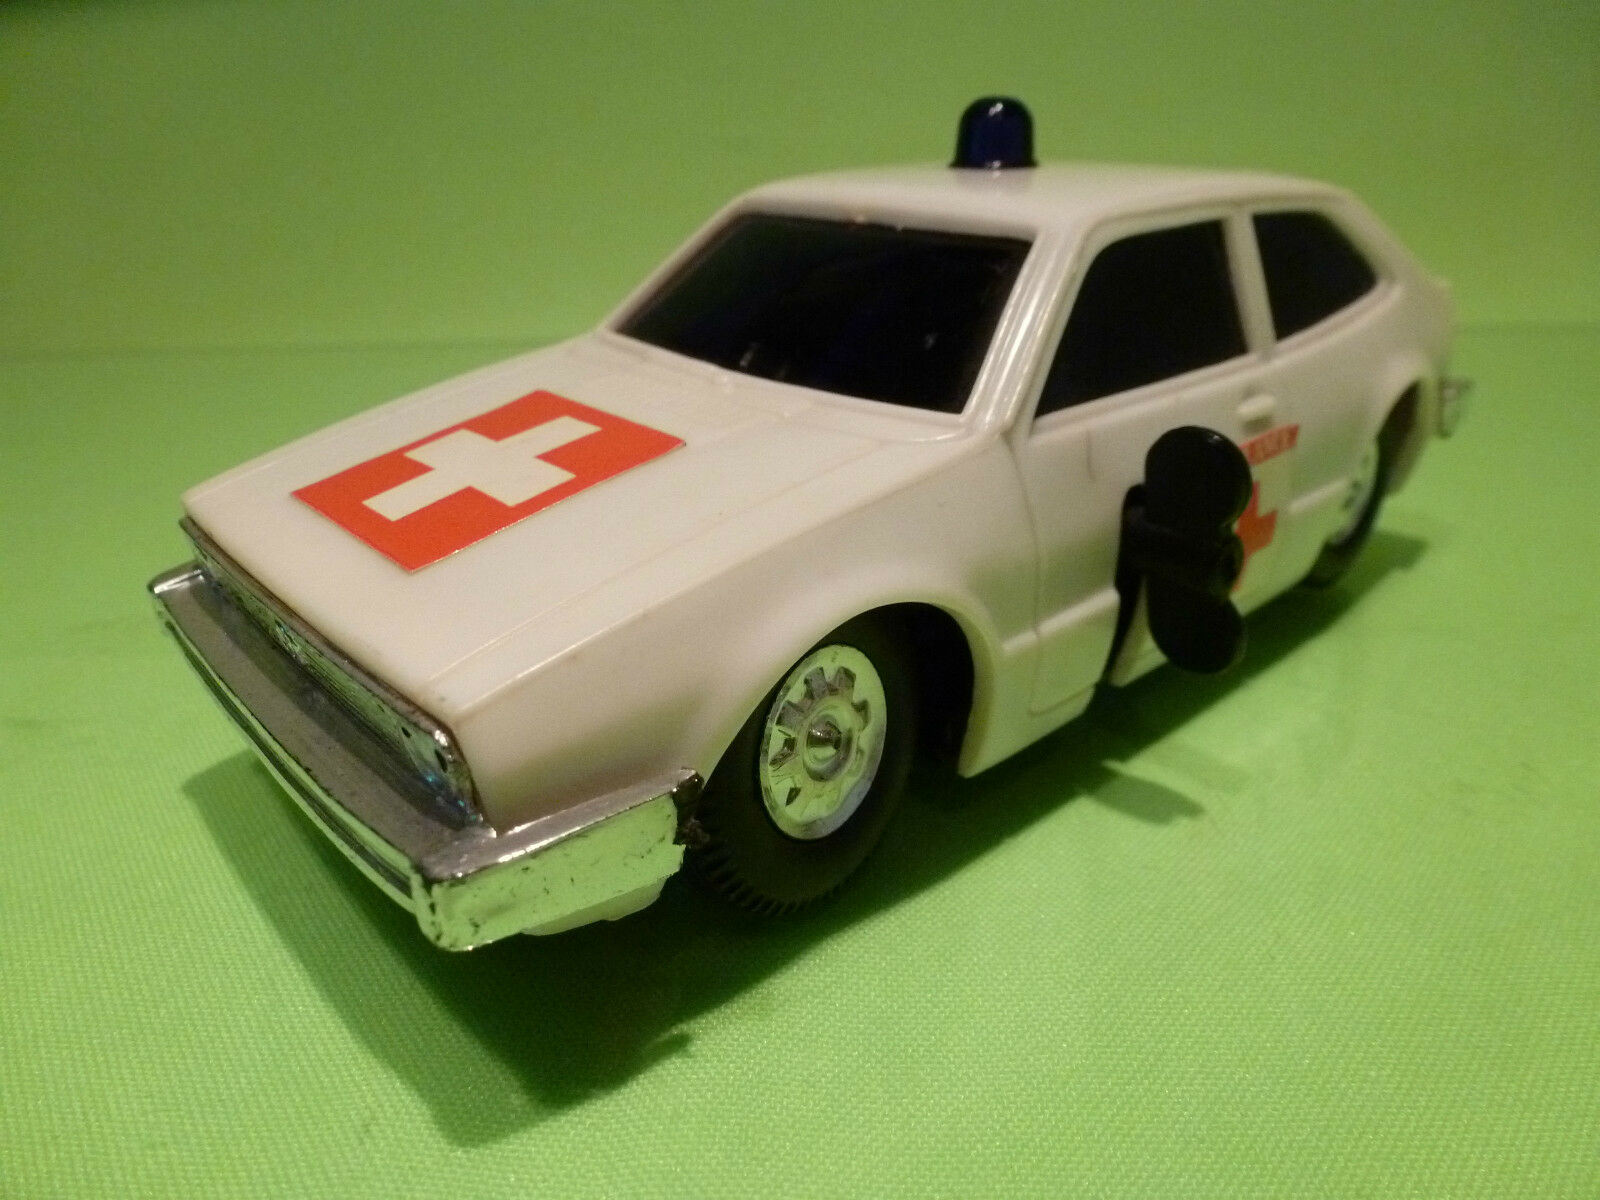 HONG KONG 782 VW VOLKSWAGEN SCIROCCO - AMBULANCE L17.0 WHITE VERY GOOD - WIND UP